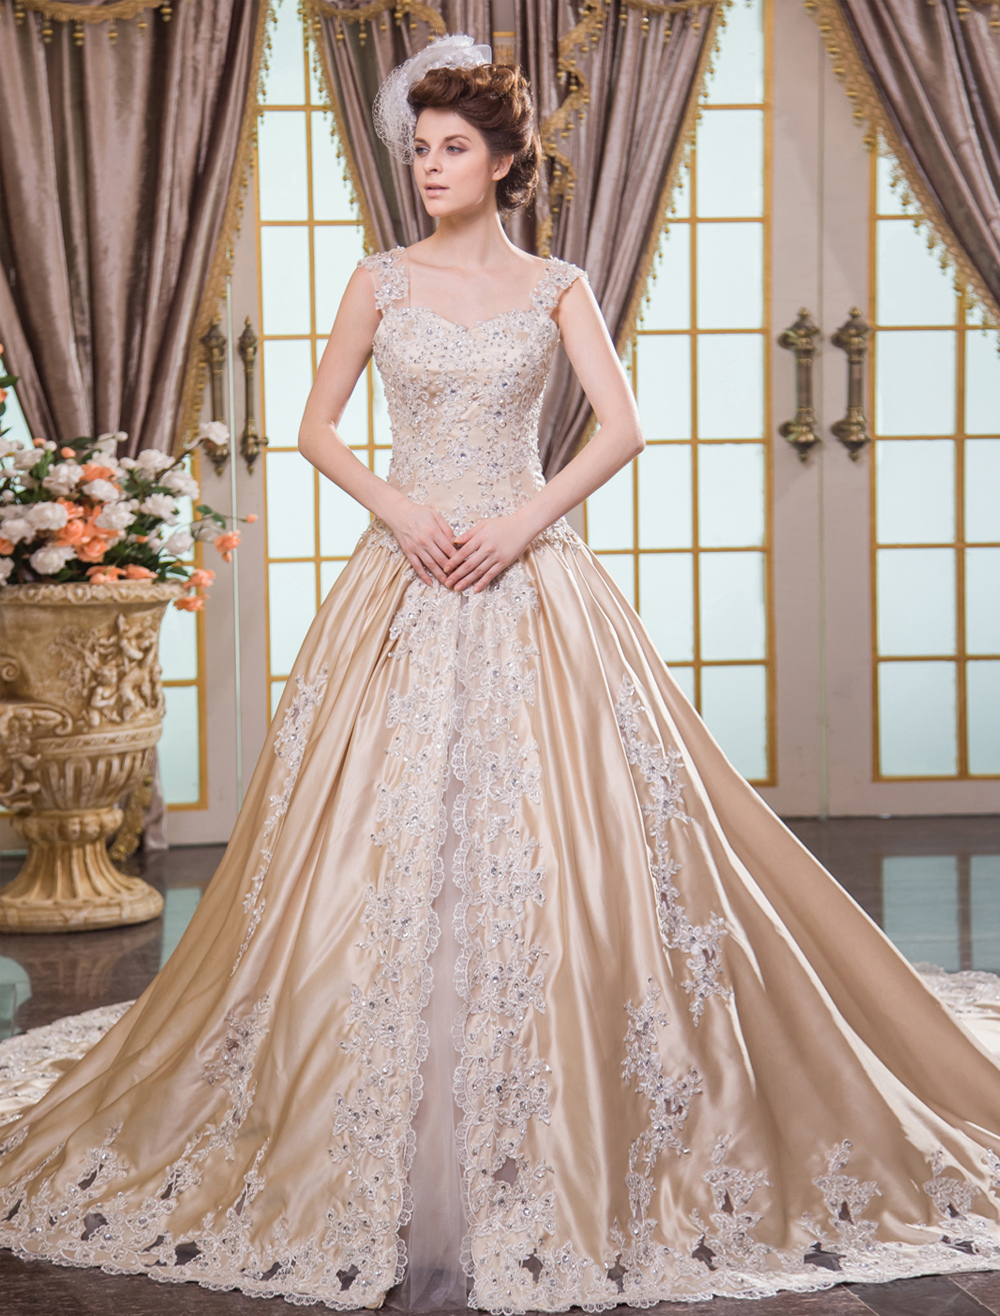 Champagne Ball Gown Lace-up Bridal Wedding Dress Milanoo